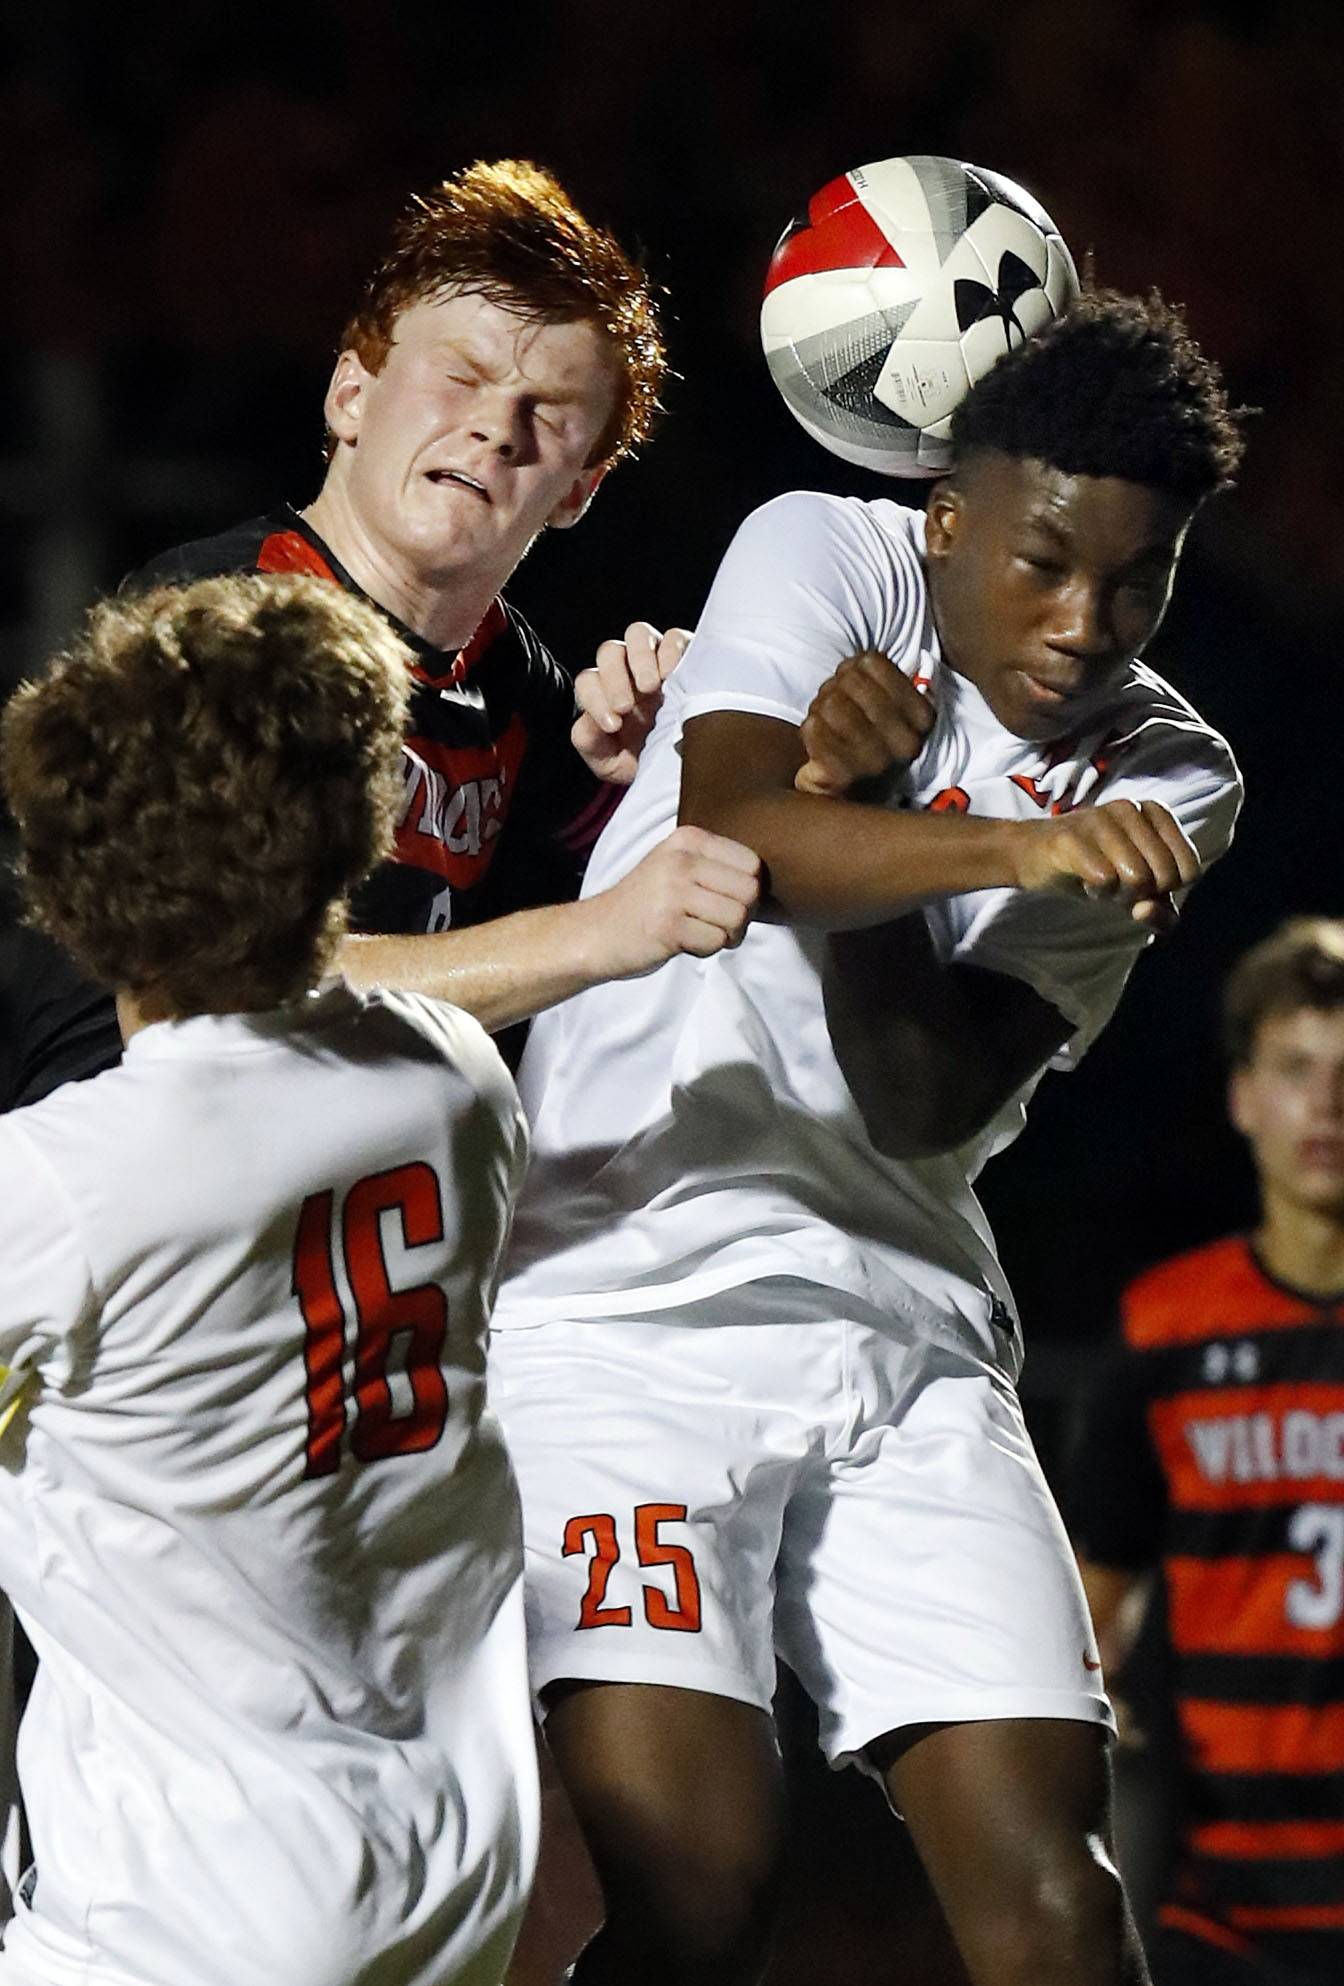 Libertyville's Evan Rasmussen, left, goes up for a header with Lake Forest Academy's David Oluwole during their game Tuesday night in Libertyville.